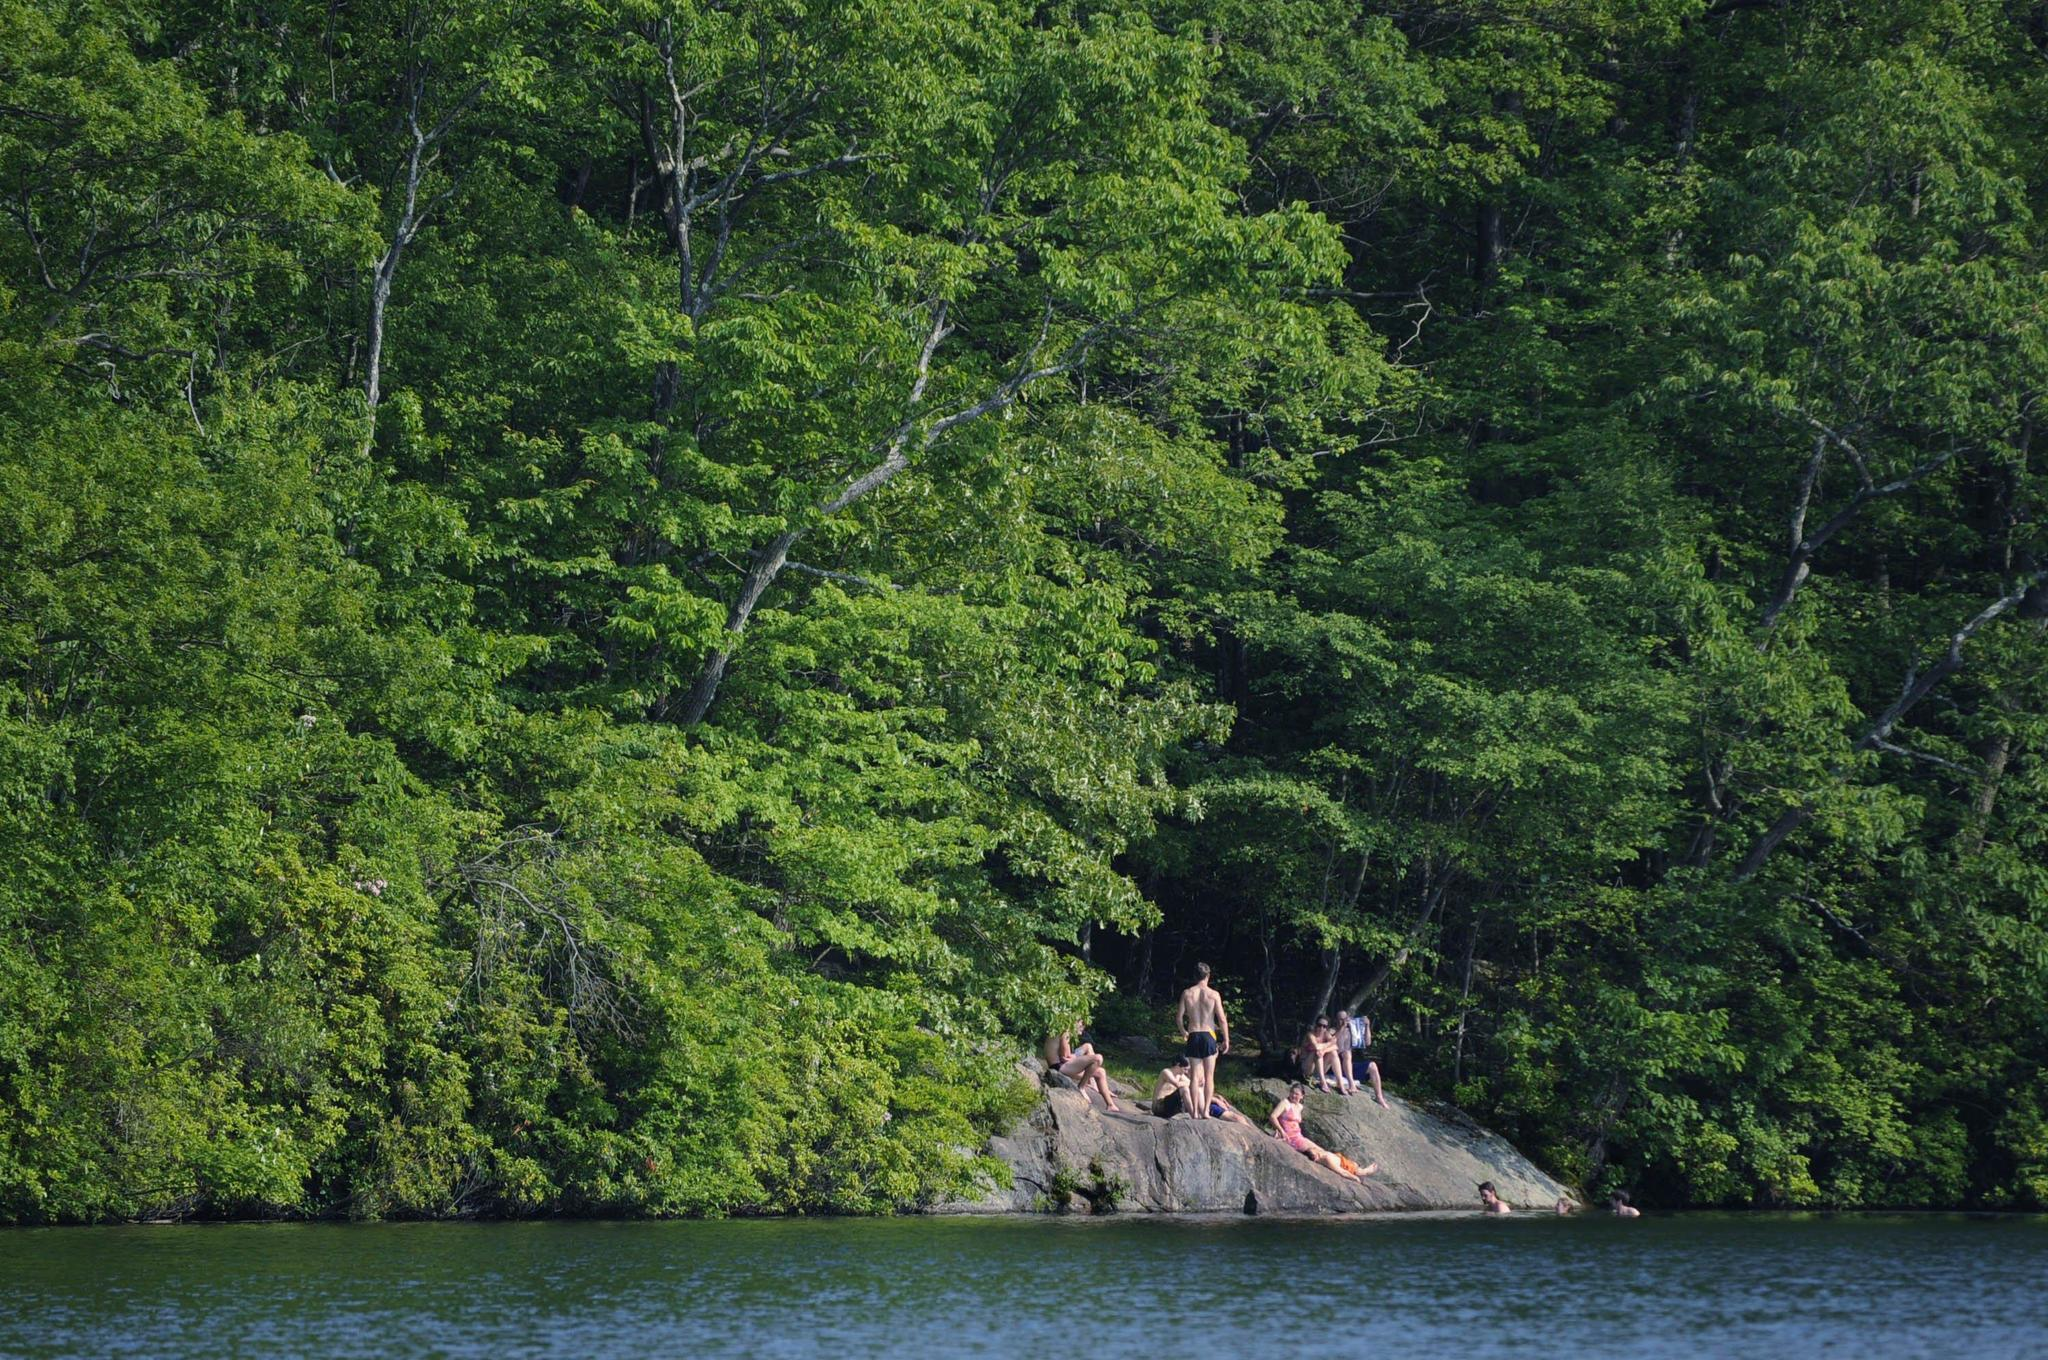 Popular Swimming Holes Four Places To Hike And Take A Dip